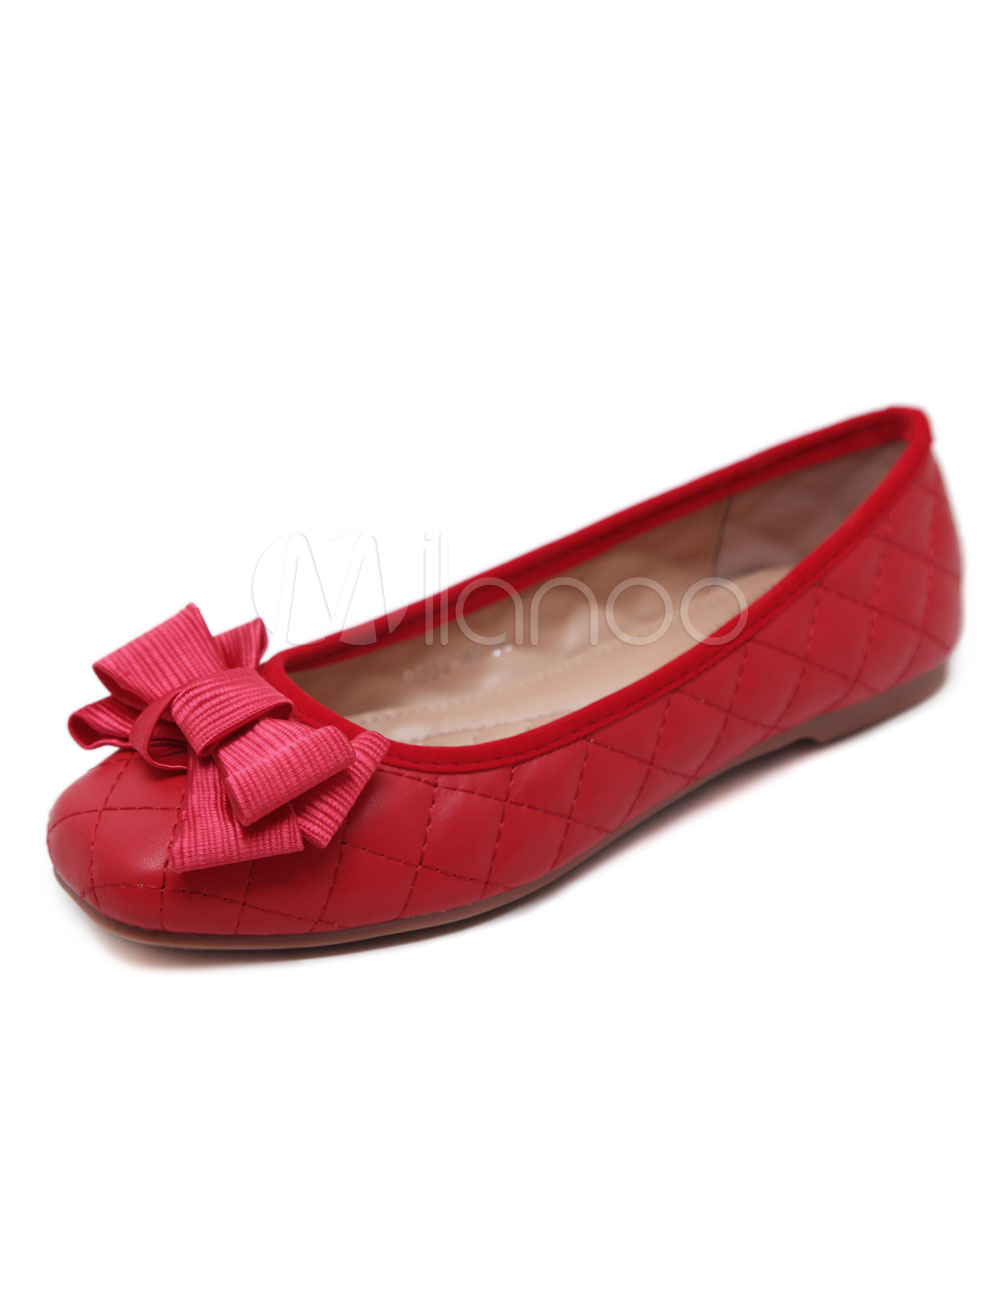 Red Ballet Flats Bows PU Square Toe Slip On Flat Shoes For Women